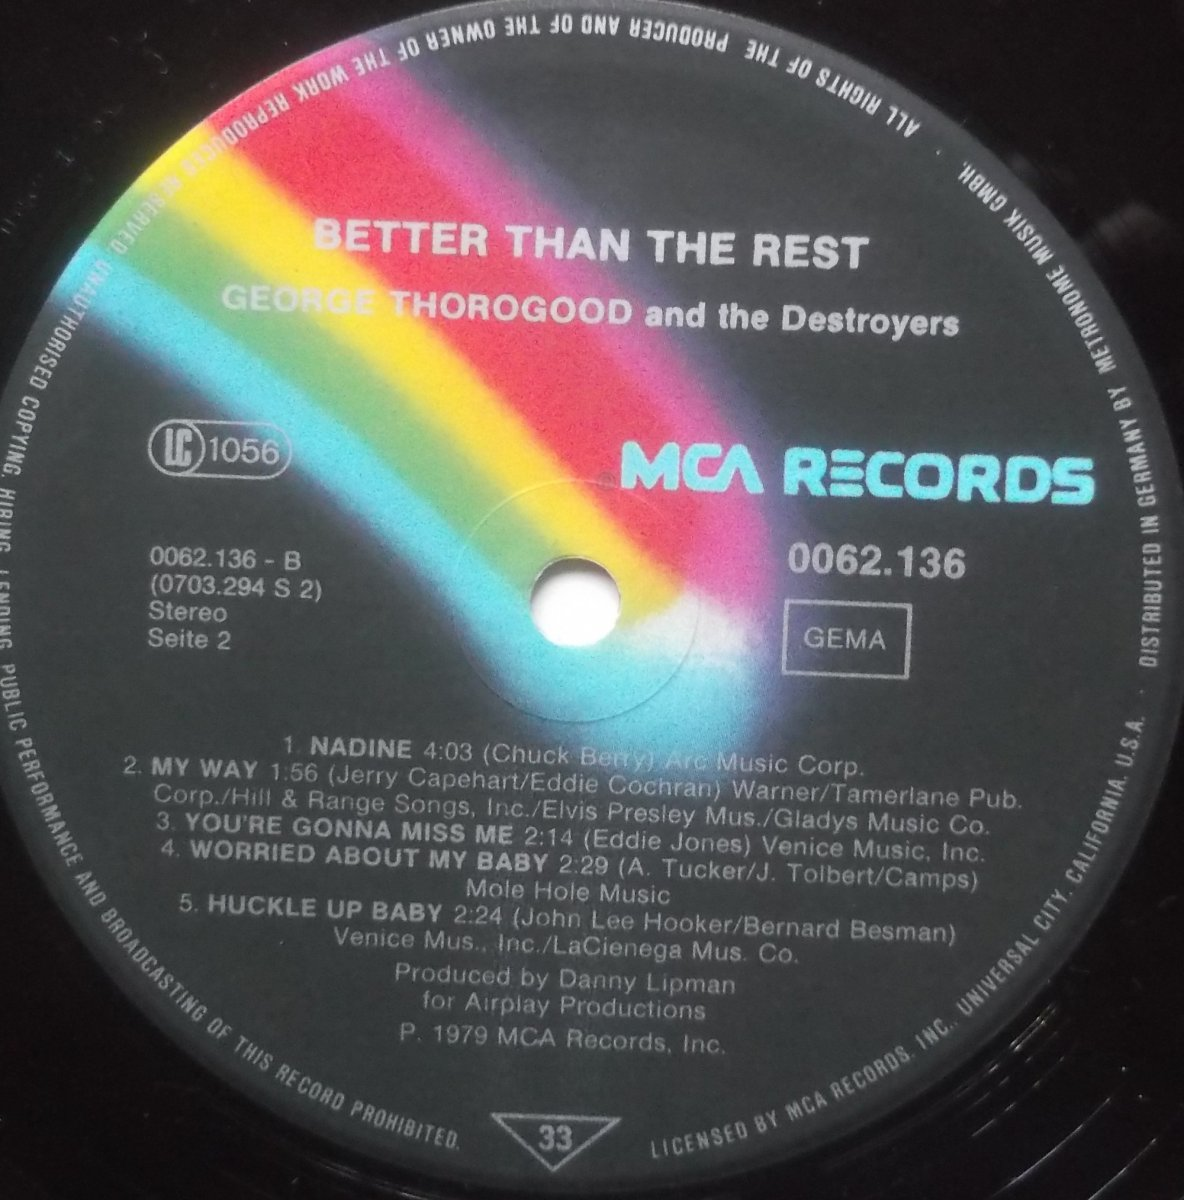 George Thorogood And The Destroyers – Better Than The Rest